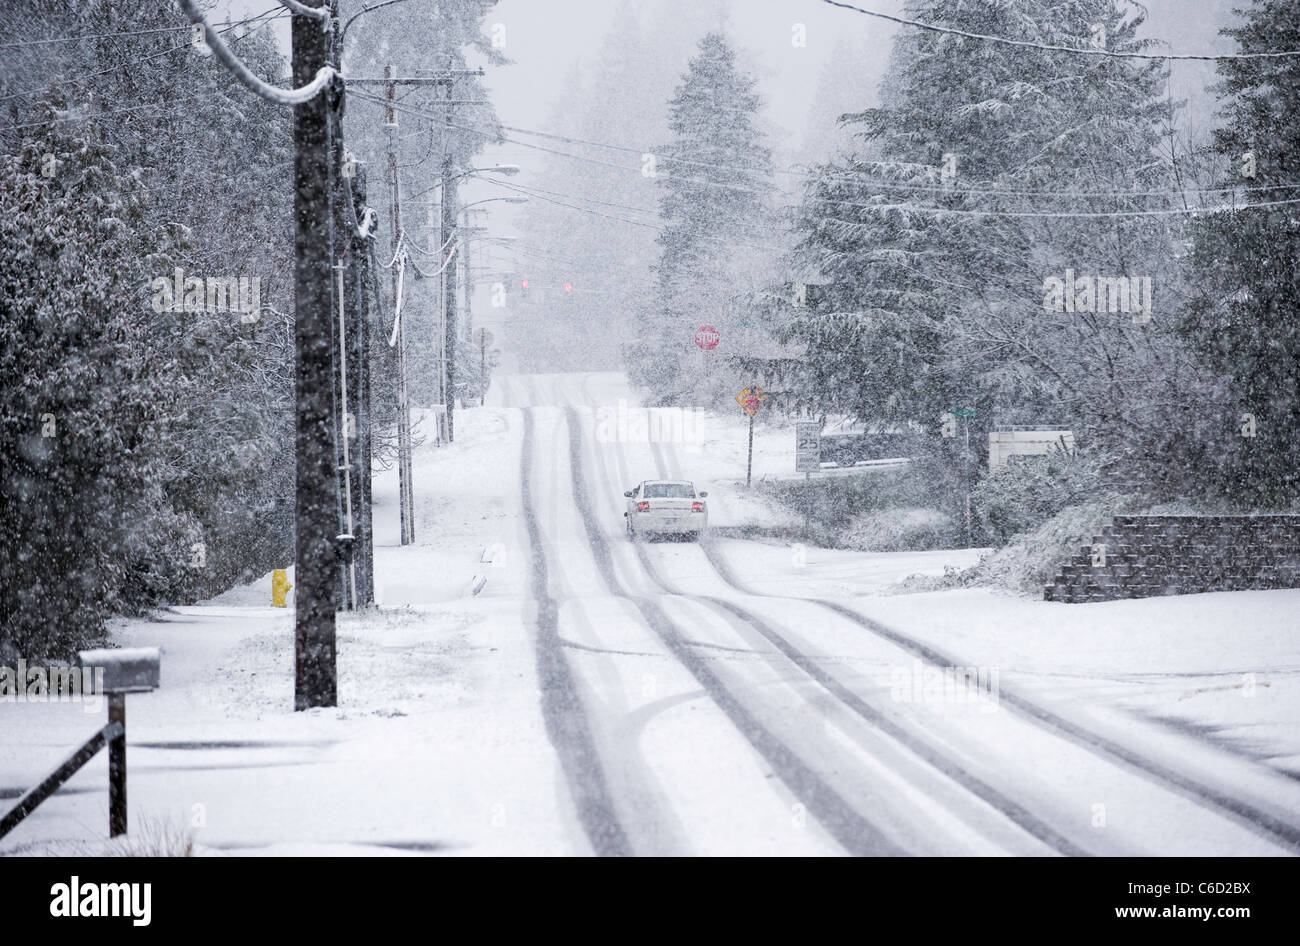 Car driving on residential street during snowstorm, Seattle, Washington, USA - Stock Image